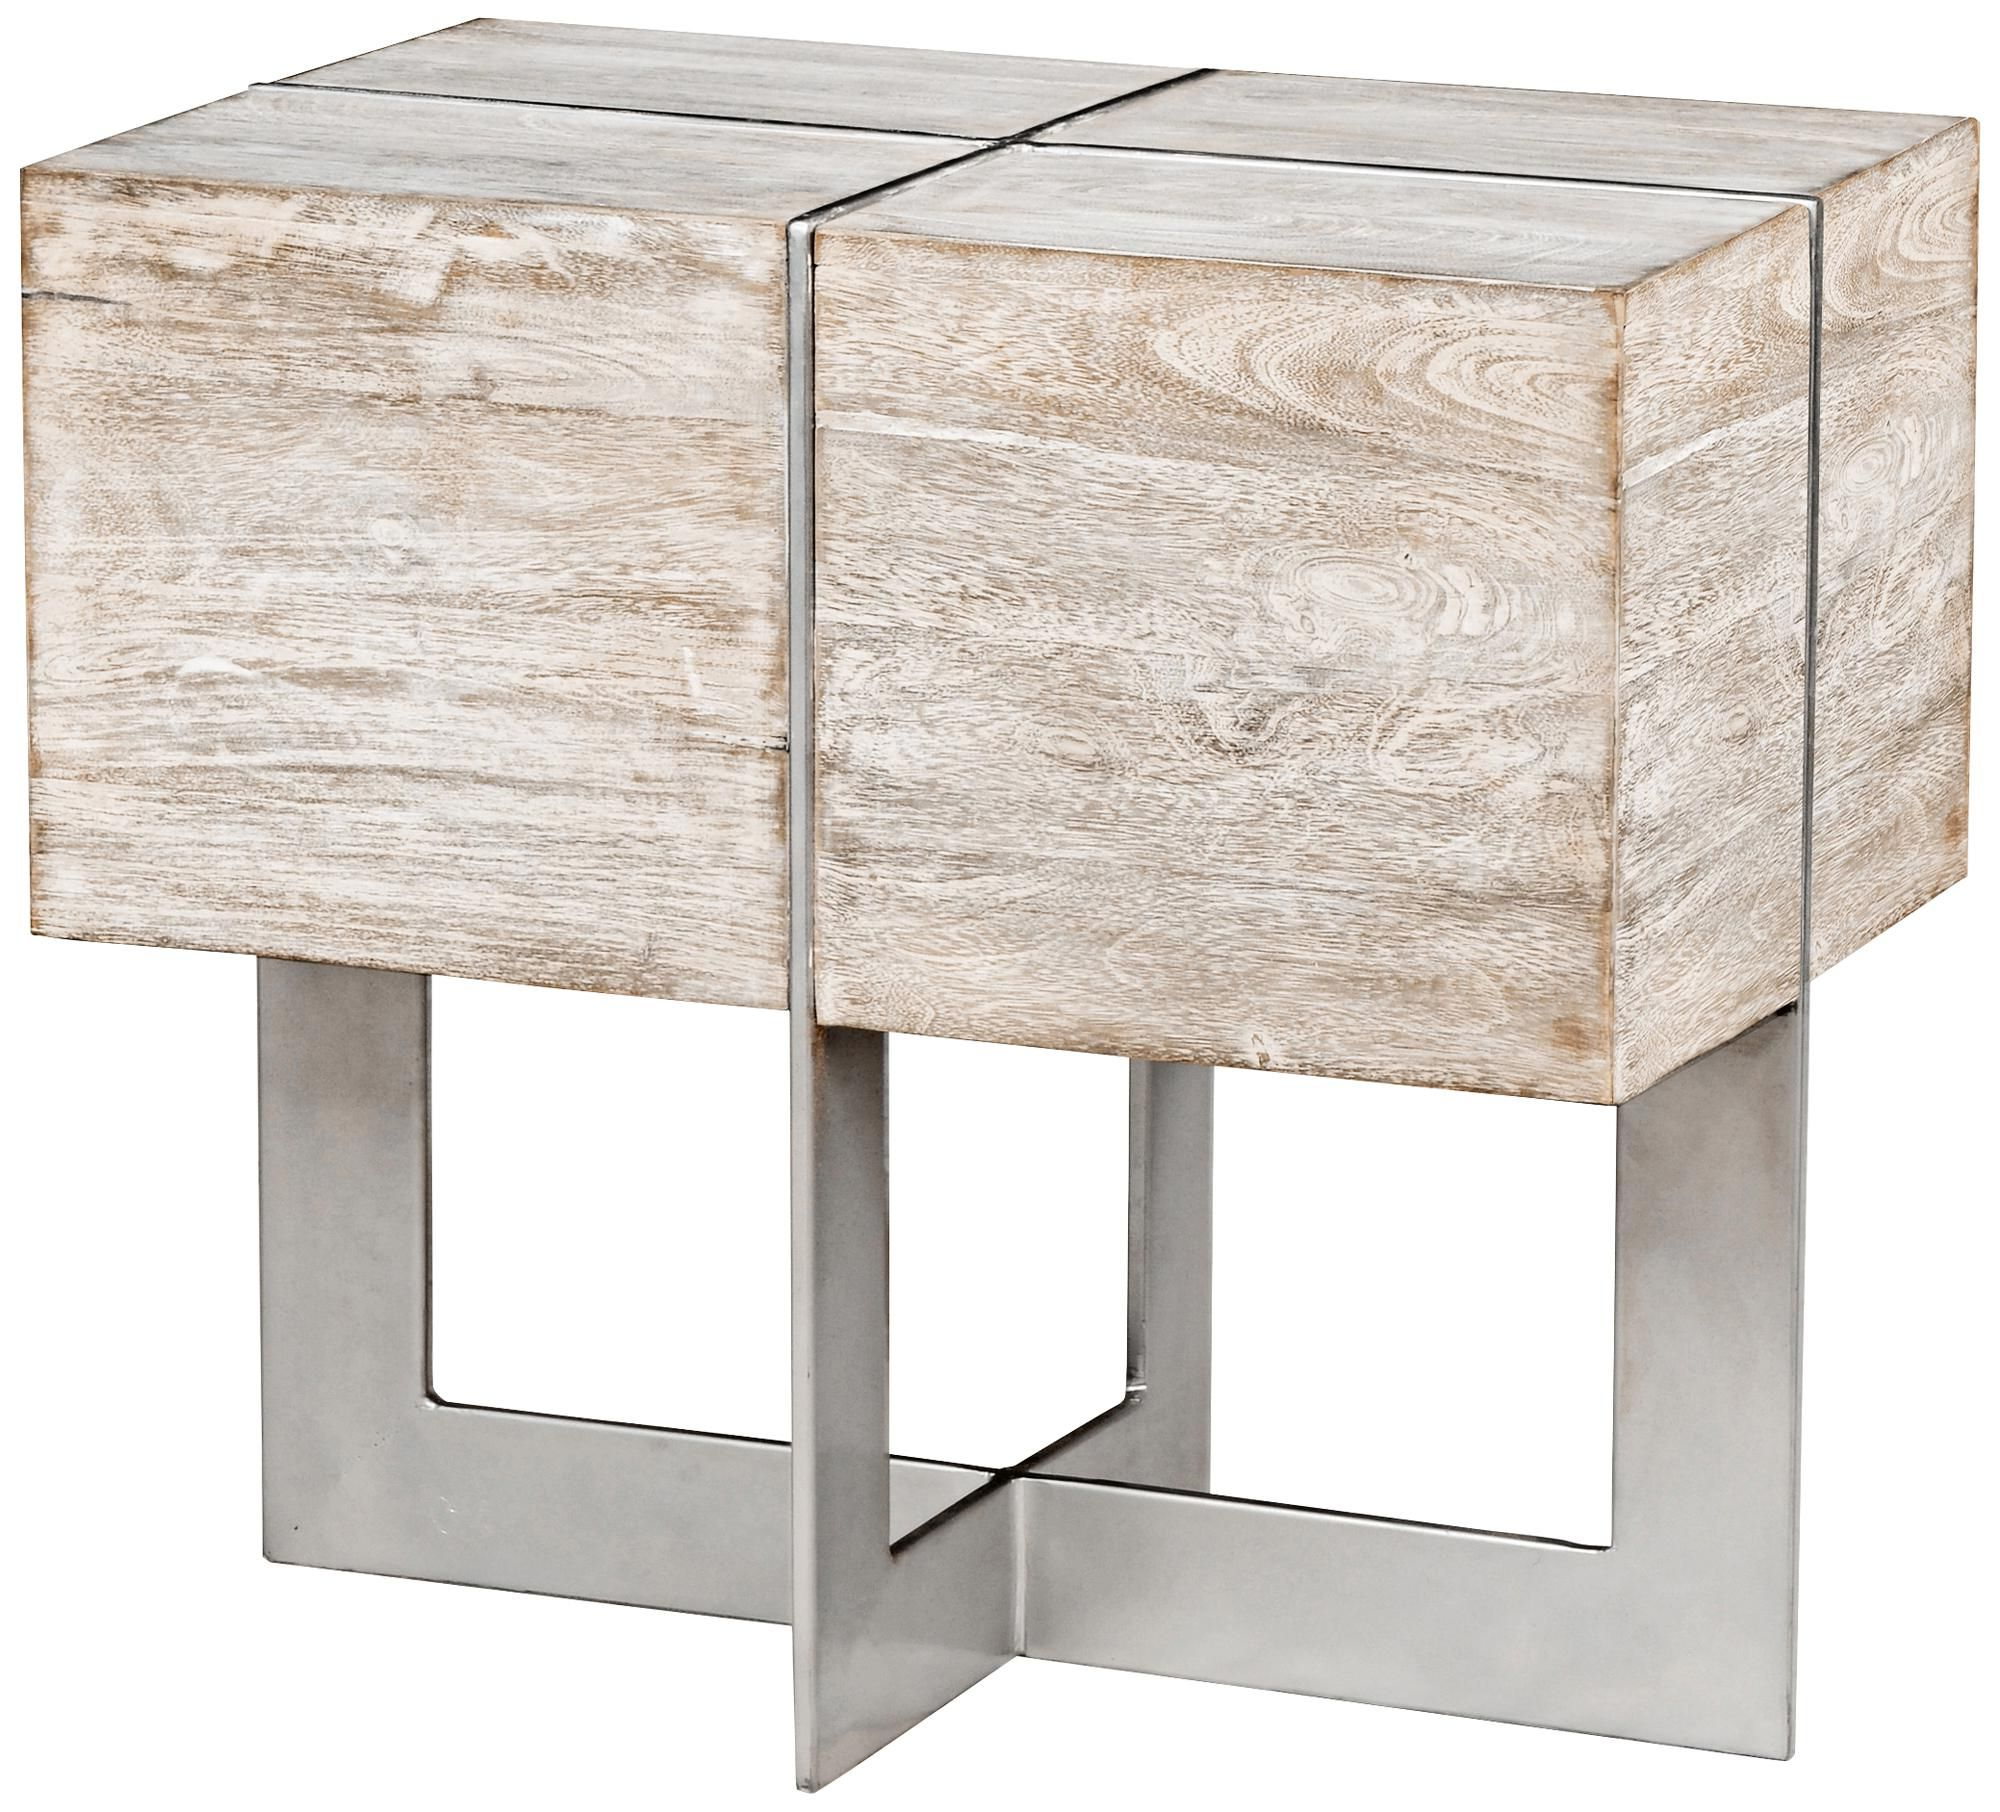 Desmond White Wash Solid Mango Wood Block End Table | Home Accents With Parsons Grey Marble Top & Dark Steel Base 48x16 Console Tables (View 17 of 20)